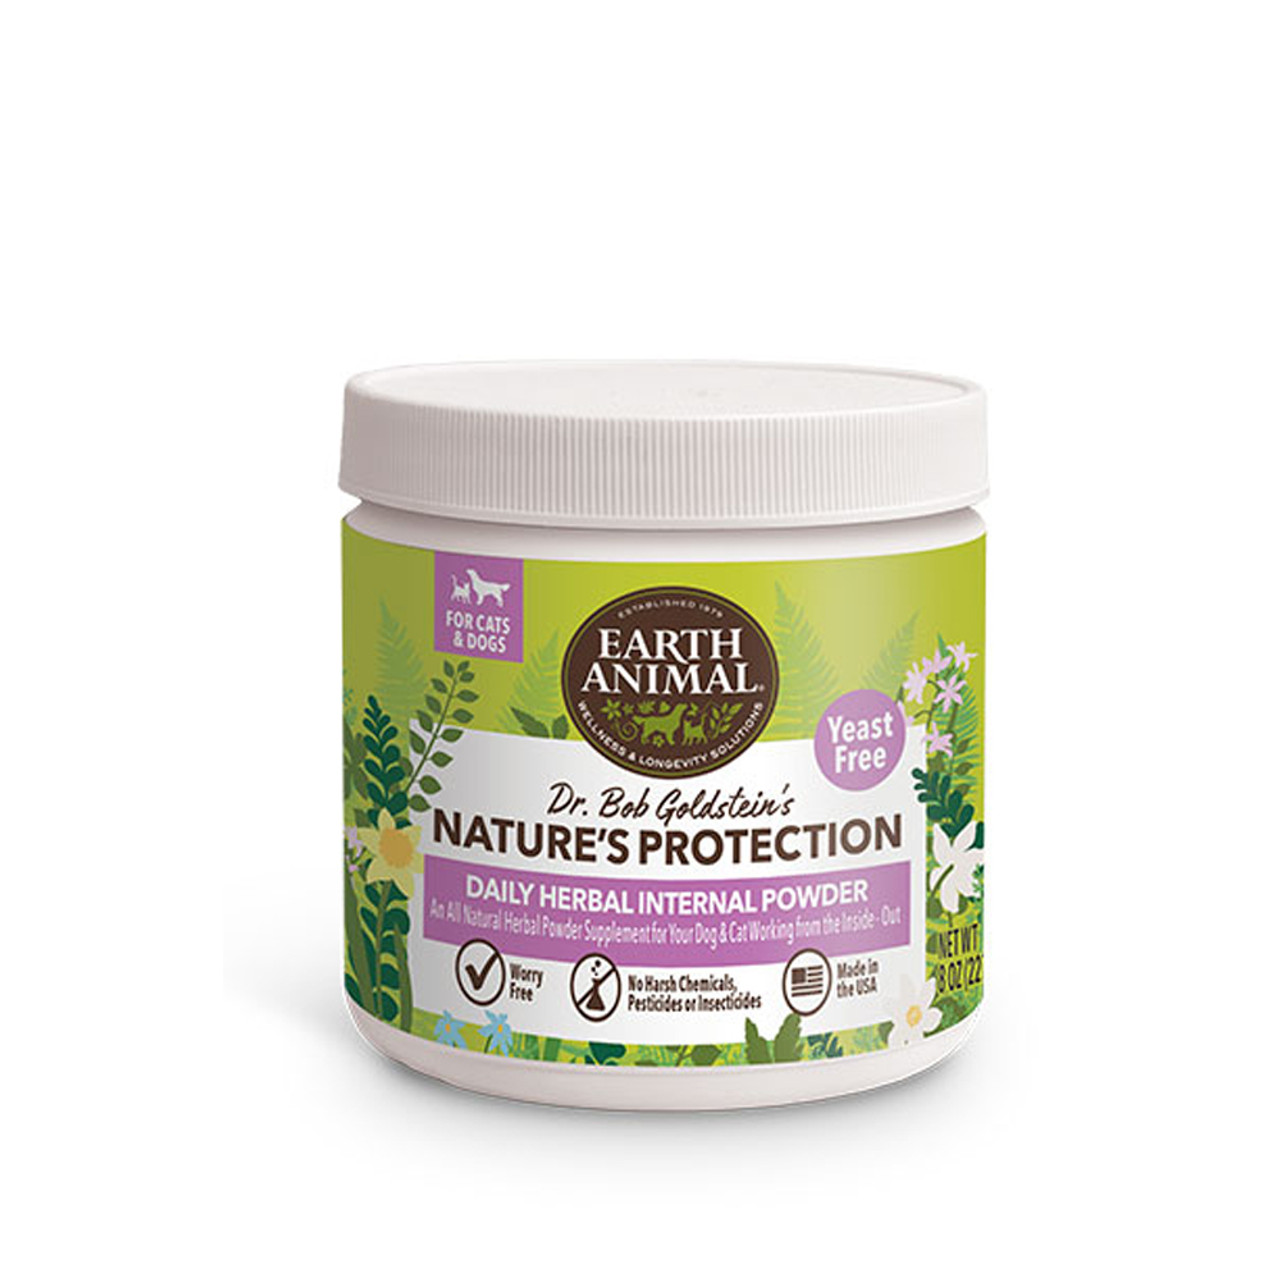 Dr. Bob Goldstein's Nature's Protection Daily Herbal Internal Powder - Yeast Free